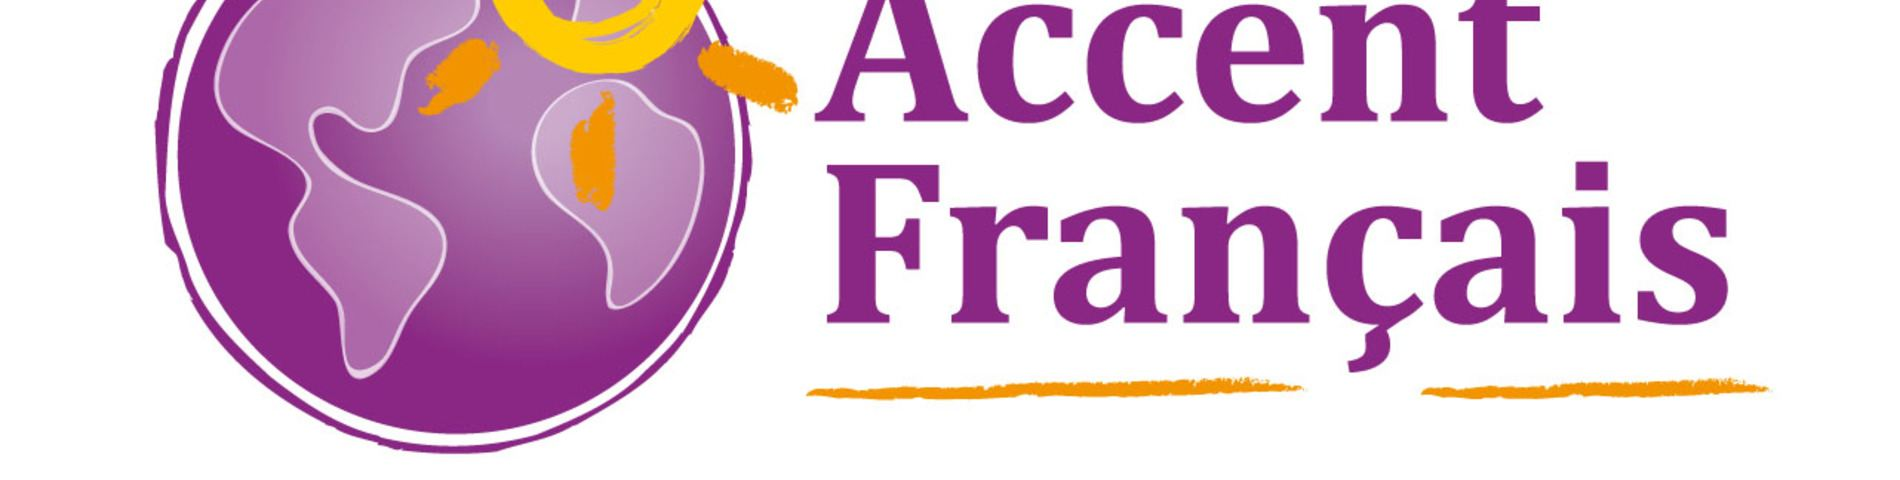 Accent Francais afbeelding 35